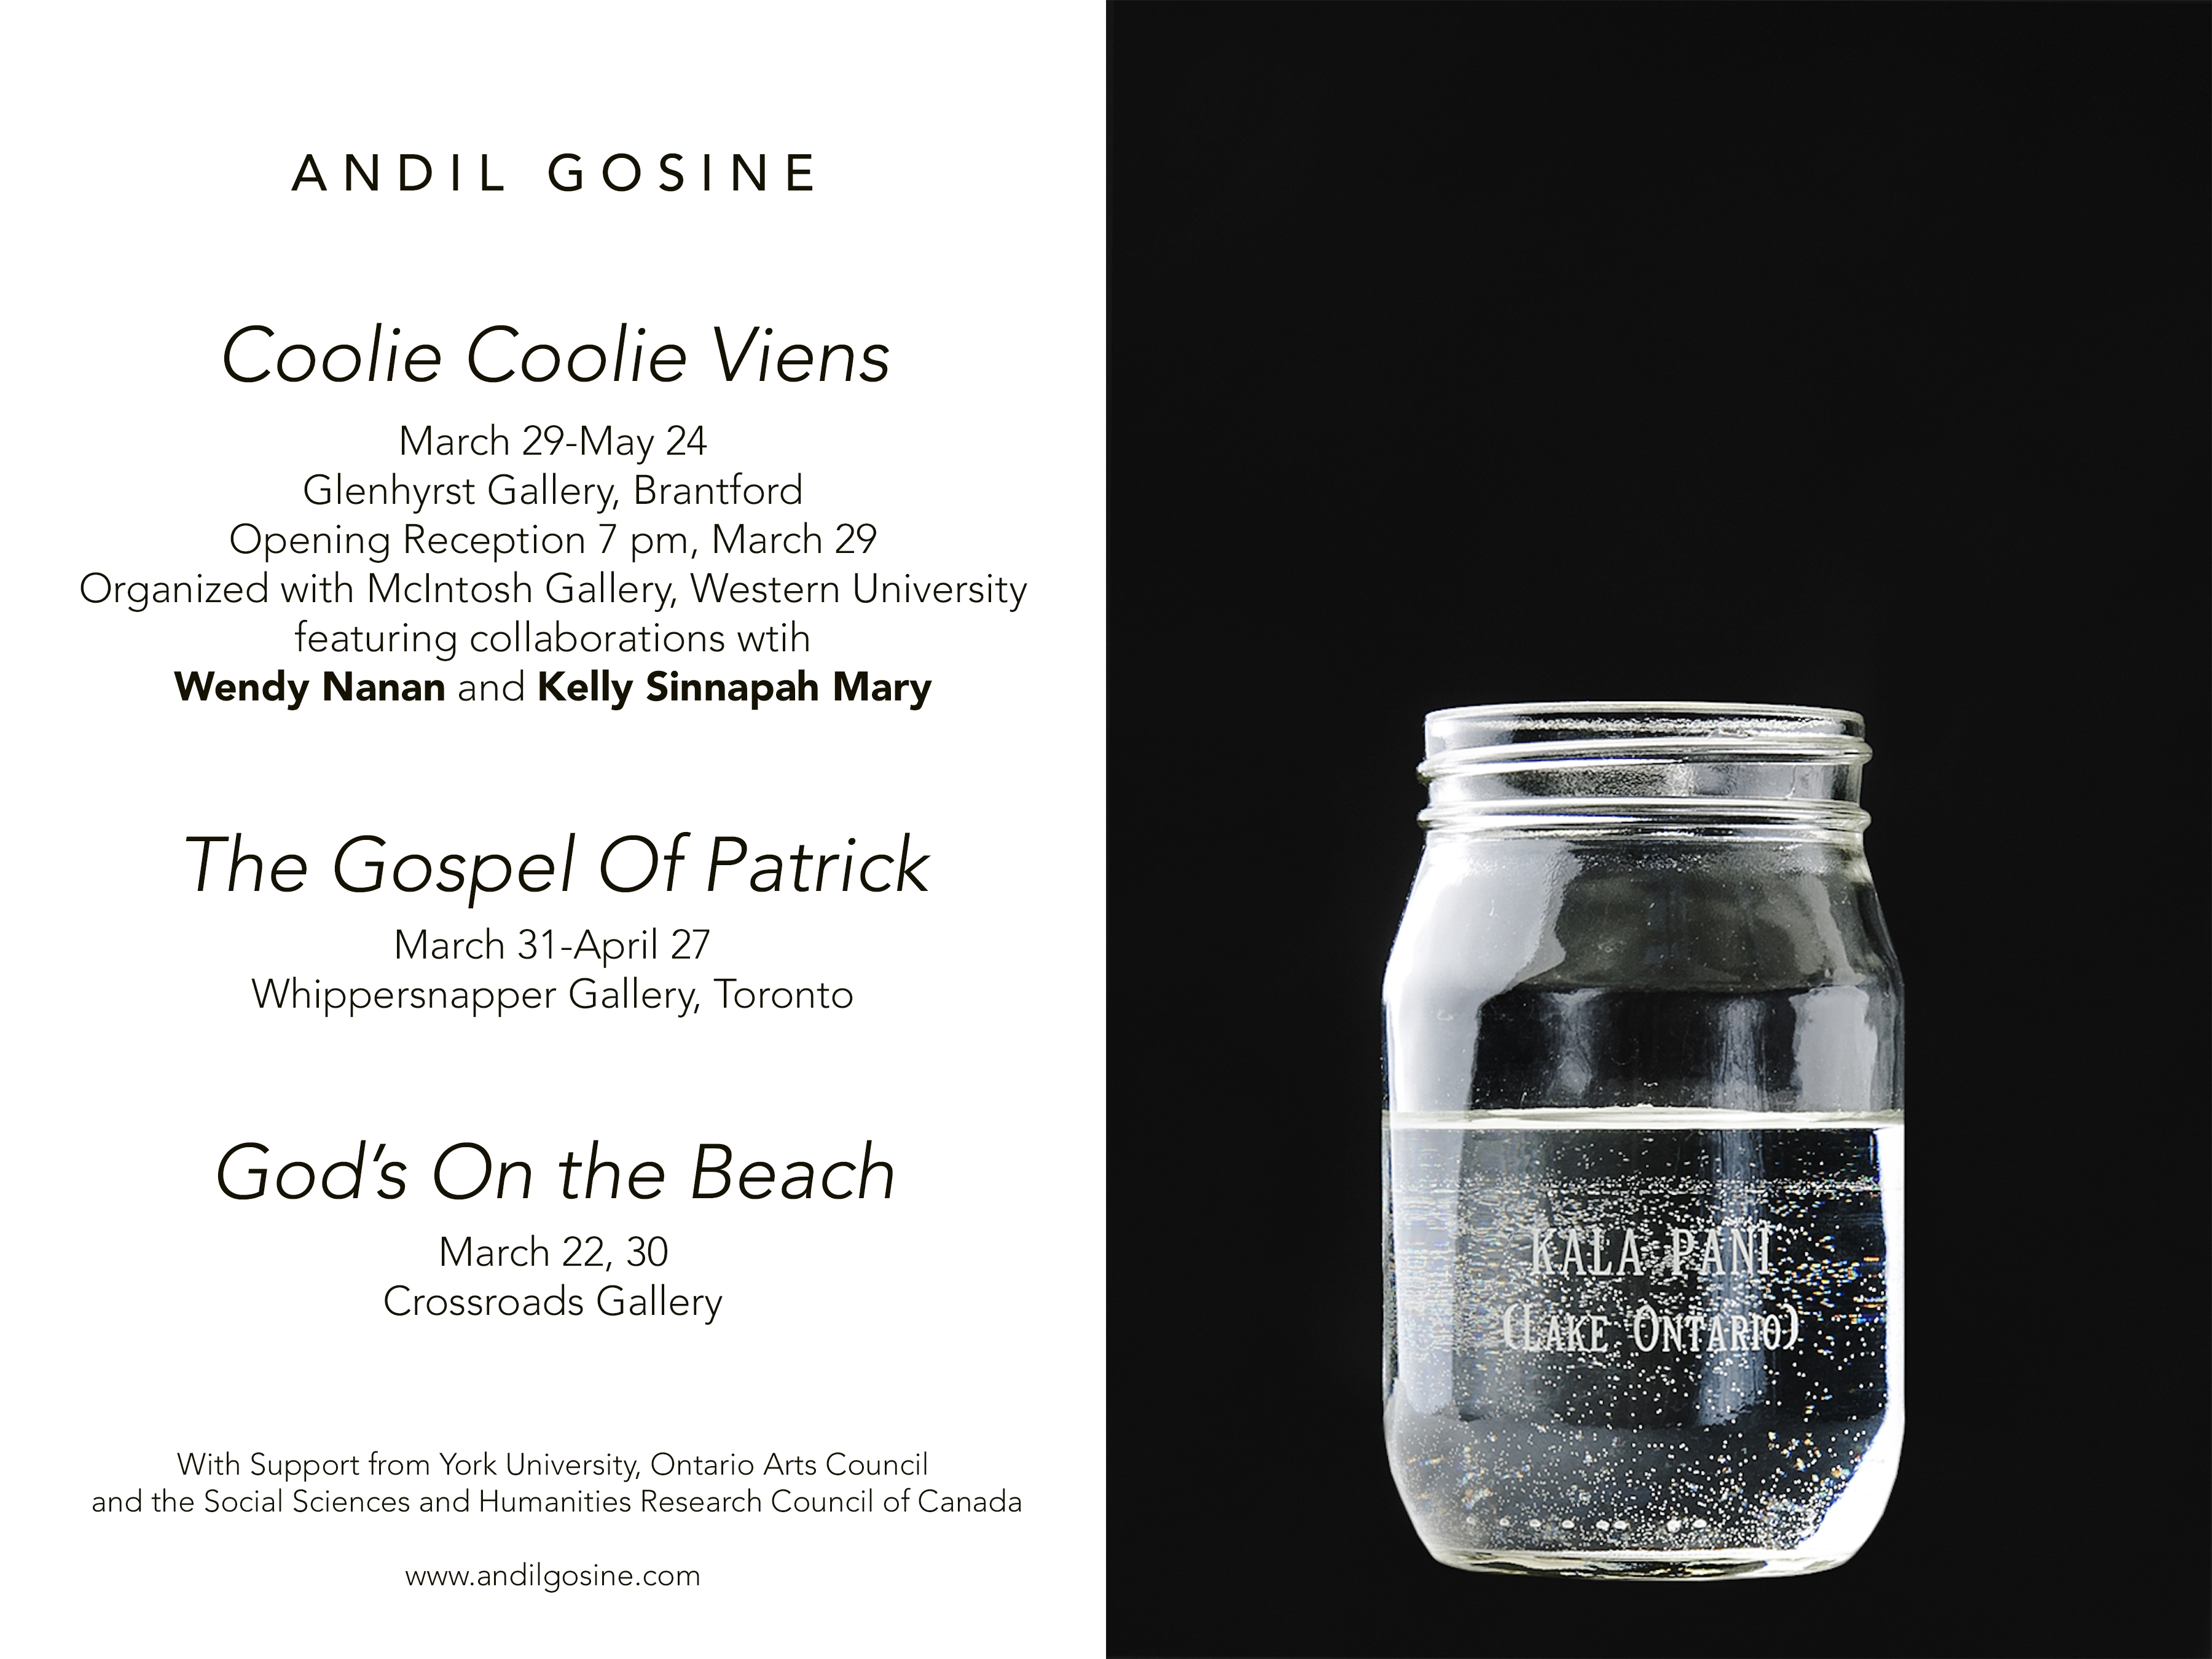 Andil Gosine exhibition announcement